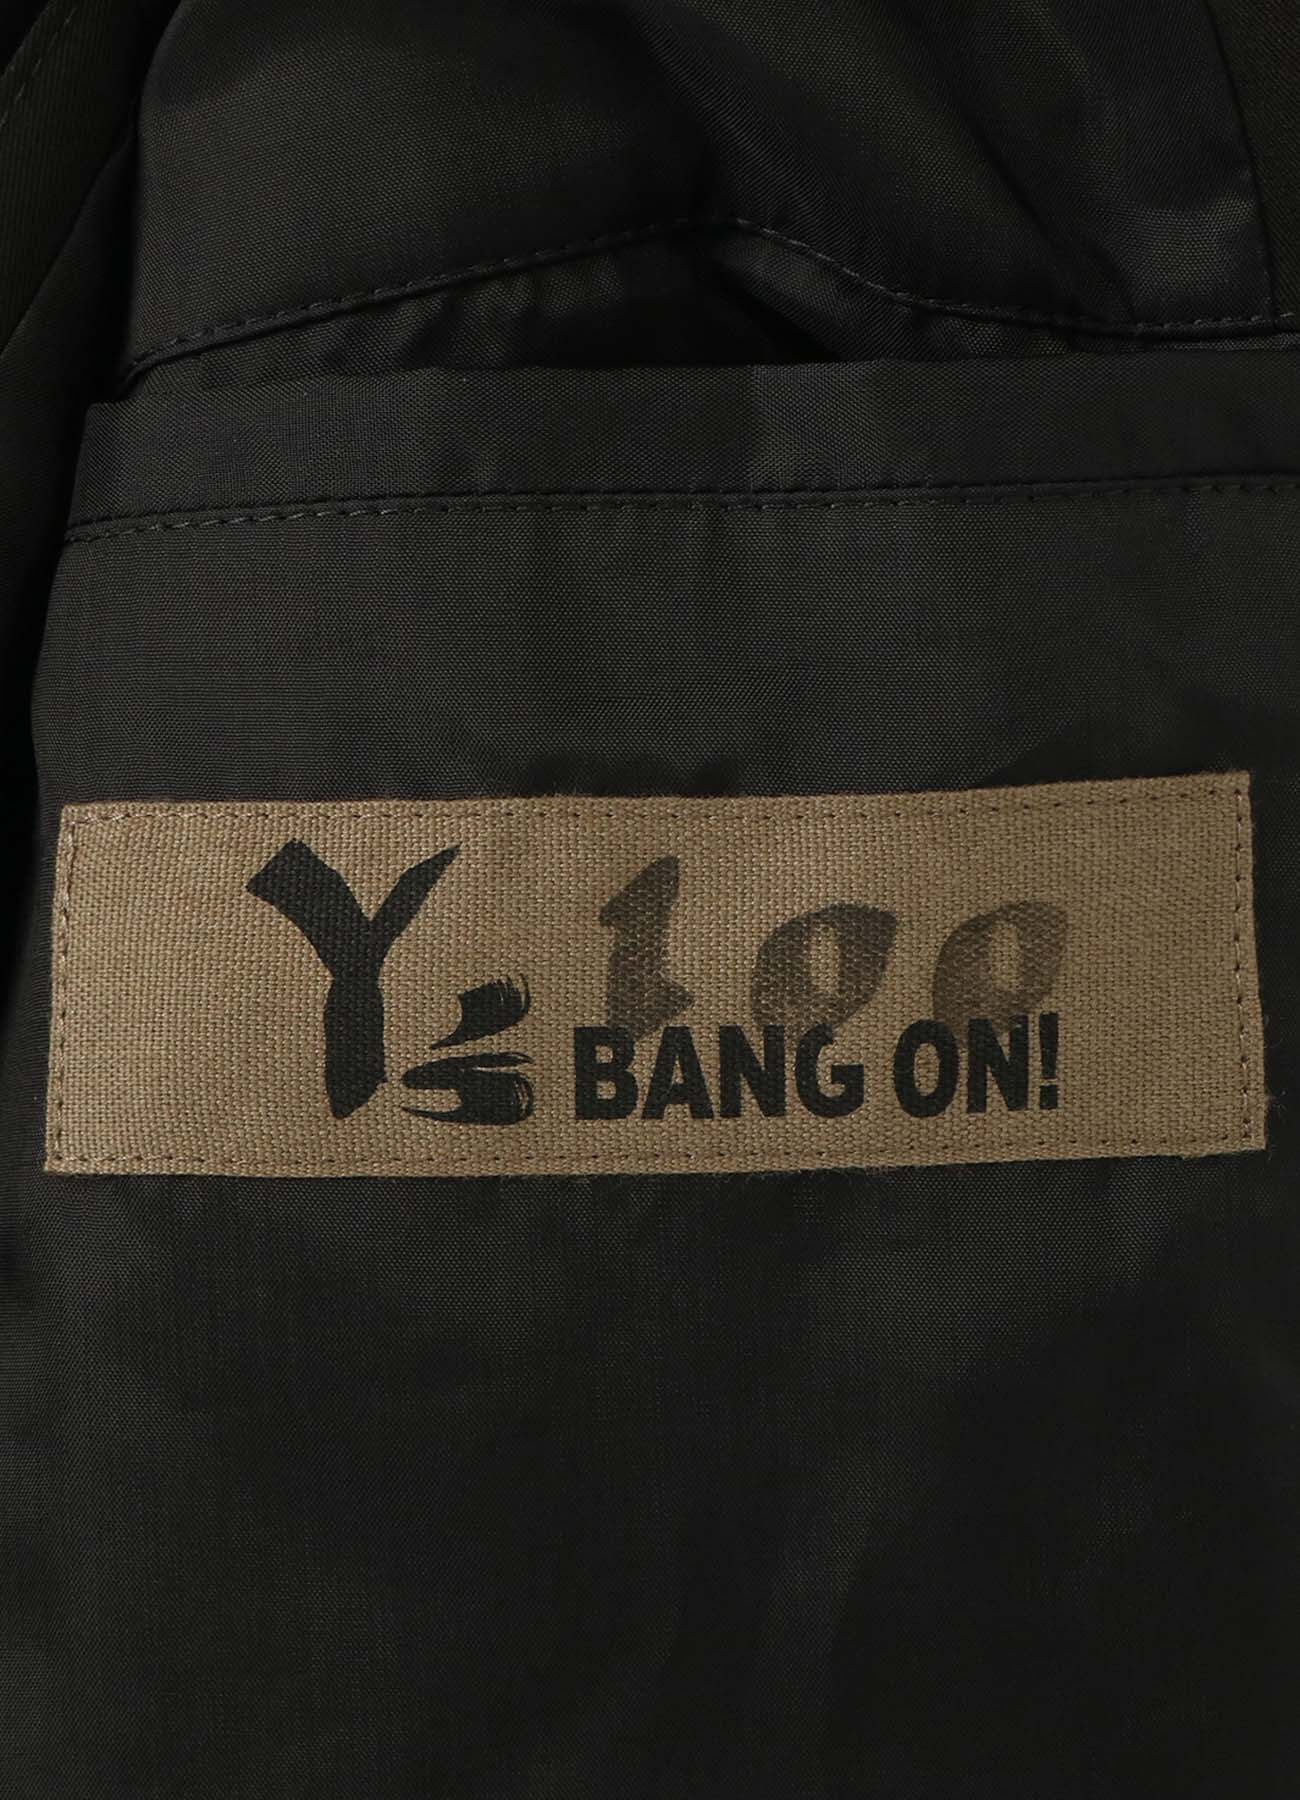 Y's BANG ON!No.100 Detachable jacket S Stretch gabardine